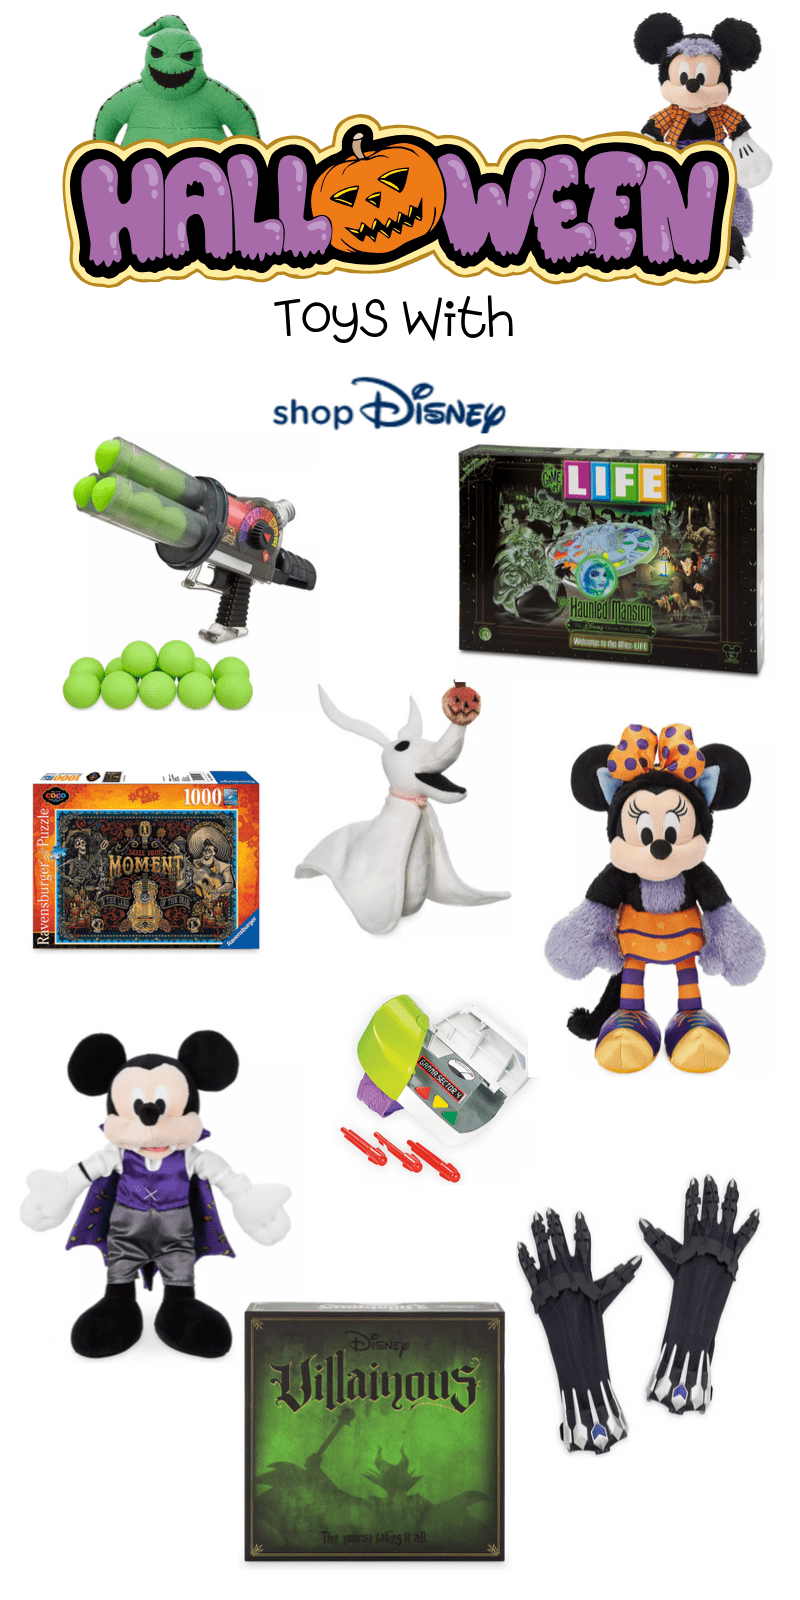 Here are the best in Disney Halloween Inspired Toys & Game This fantastic post rounds up the spooky and adorableness of ShopDisney's Halloween Collection for 2019.  #ad @ShopDisney #halloween2019 #disney #disneylove #disneymagic #waltdisney #disneyprincess #mickeymouse #disneyphoto #disneylife #disneyfan #mickey #disneyaddict #disnerd #starwars #halloween